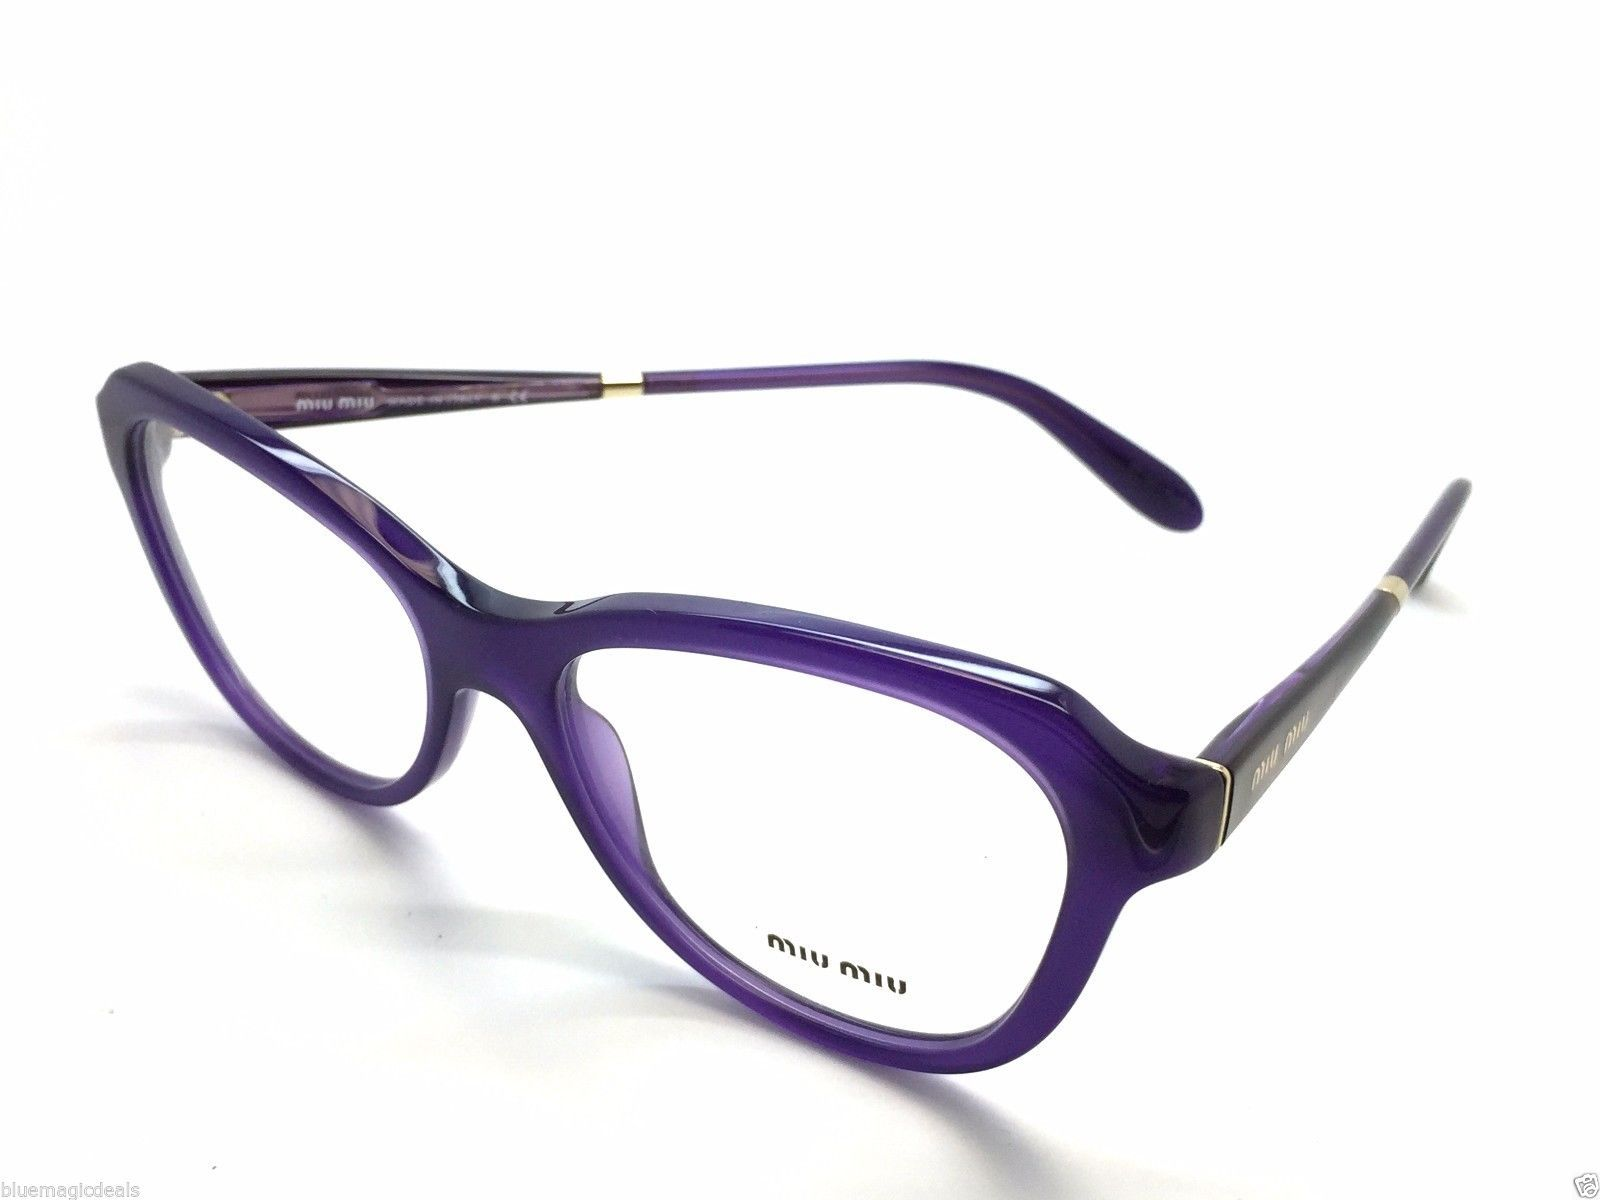 9ba8e30c36d S l1600. S l1600. Previous. NEW Miu Miu VMU 01N TFI1O1 Violet Gold New  Authentic Womens Eyeglasses 52mm 2518